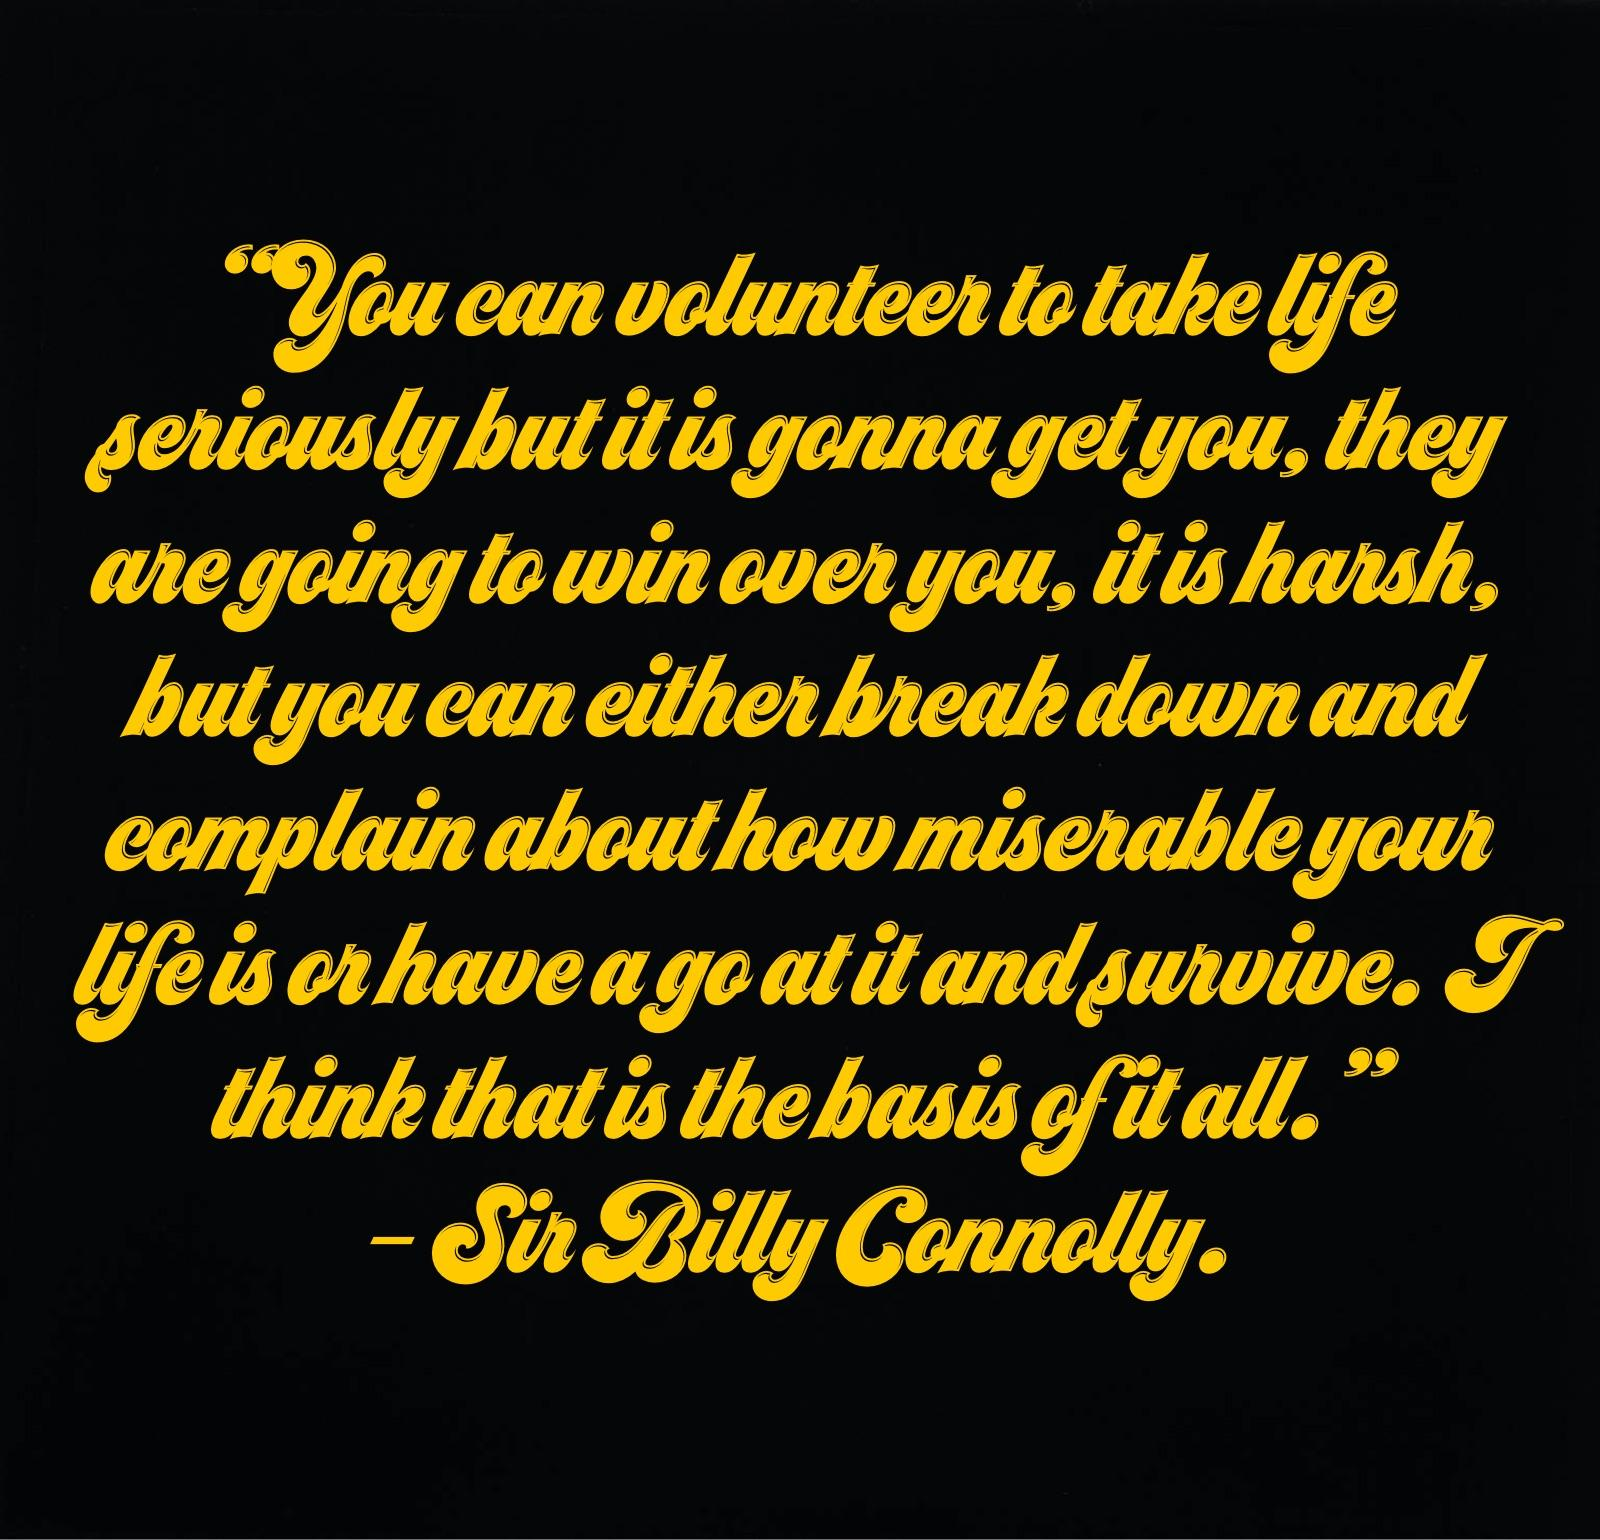 """You can volunteer to take life seriously but it is gonna get you,"" Sir Billy Connolly. (1080x 1080)"